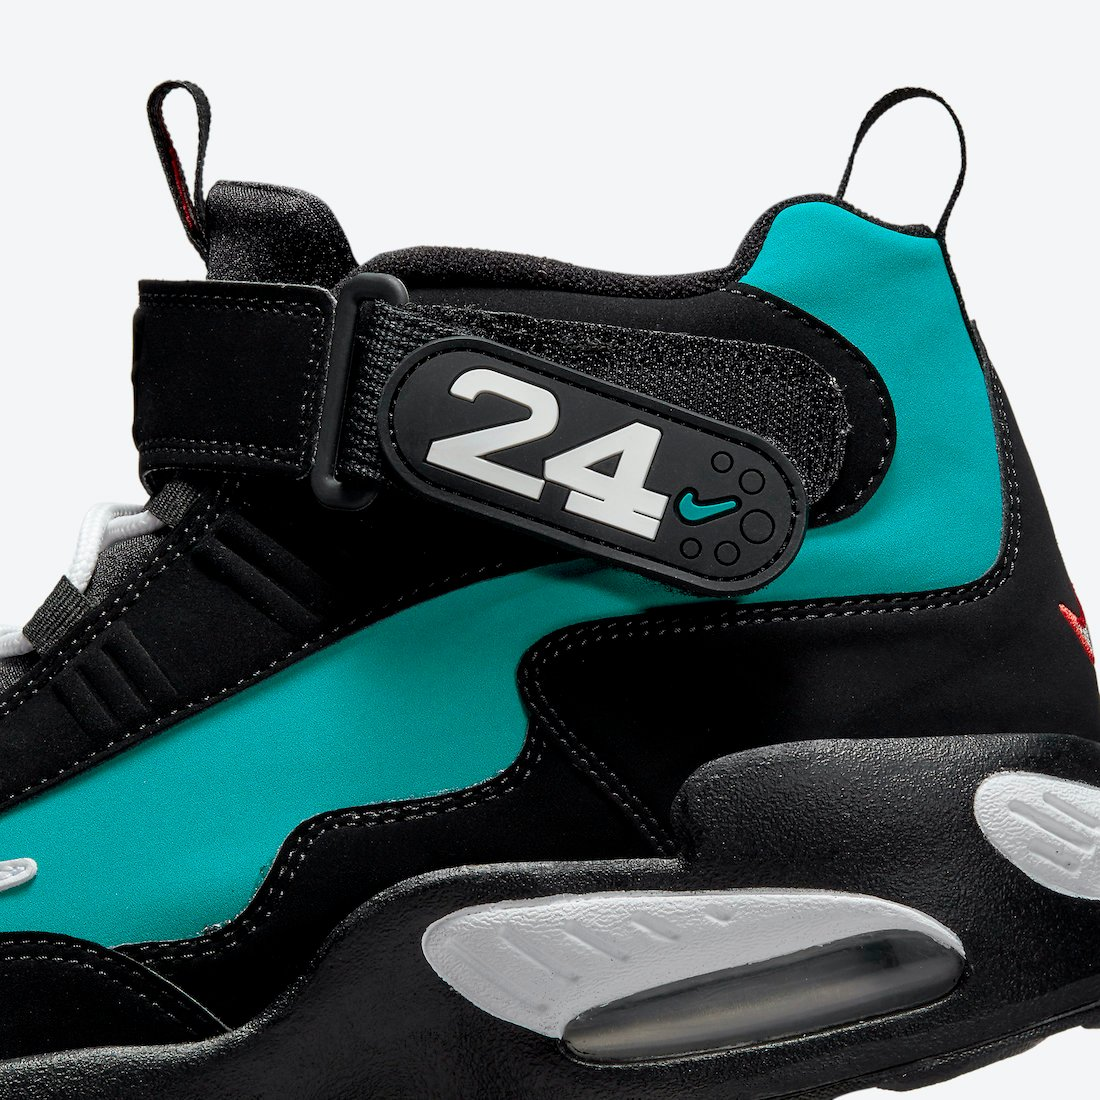 Nike Air Griffey Max 1 Freshwater 2021 DM8311-001 Release Date Info